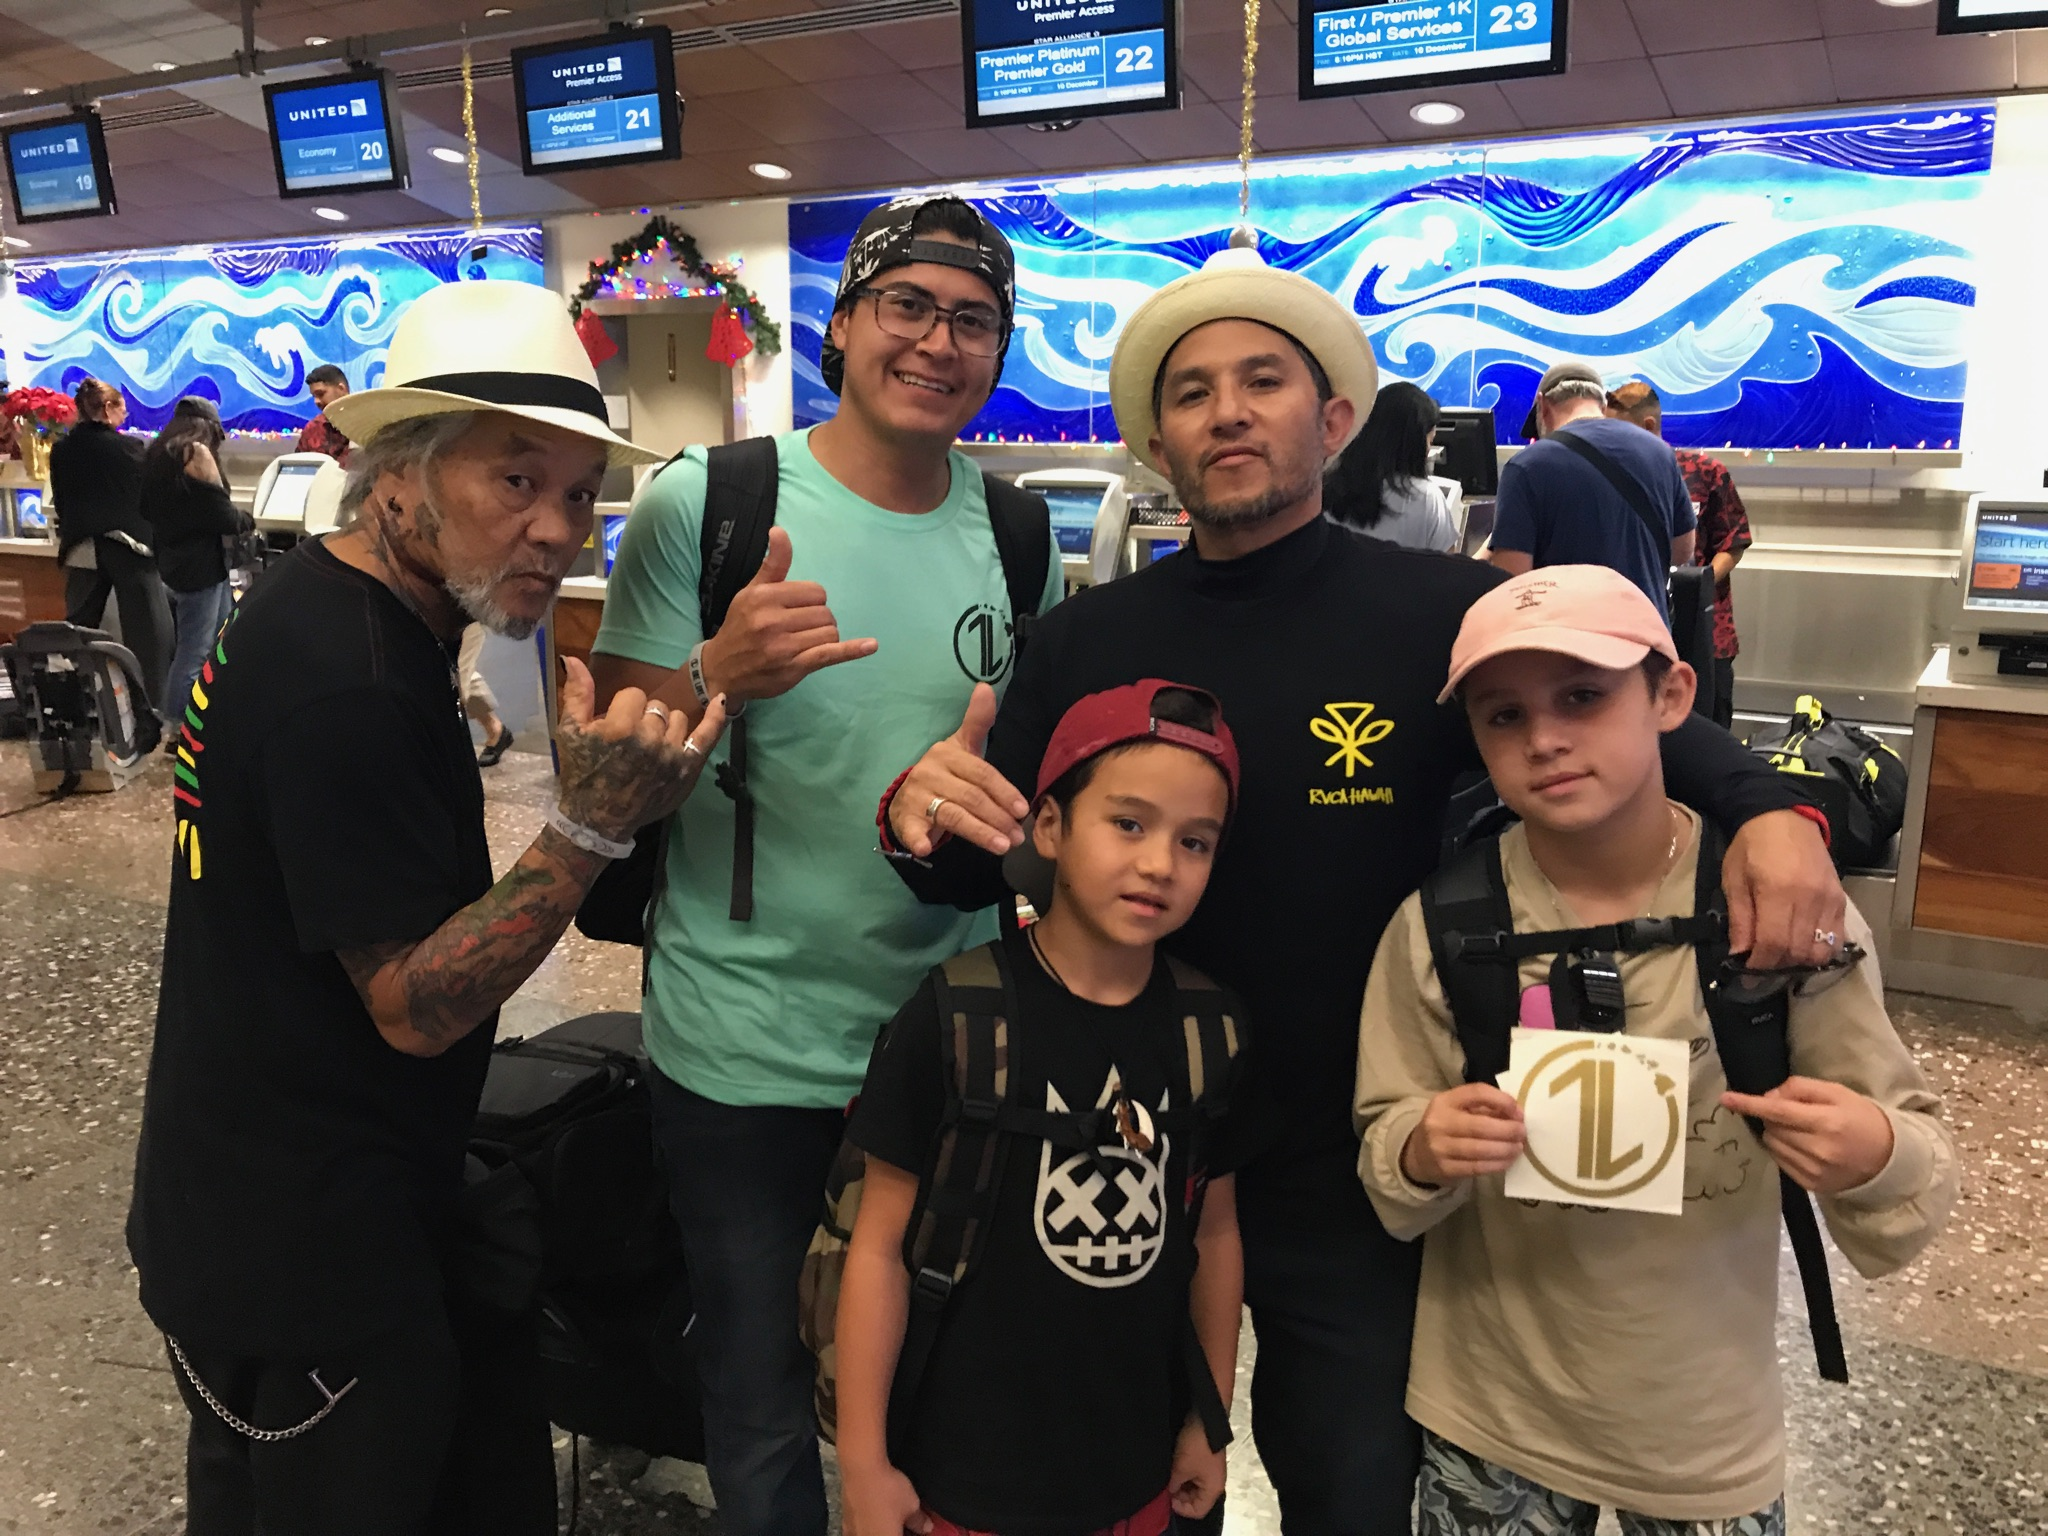 Auburn got to talk with Christian Hosoi yesterday on Oahu, and Christian was at the North Shore Skatepark with his fam and saw us doing the #OneLoveSkate event Saturday. Thankful for lots of Divine Appointments last weekend! #Sightings :)